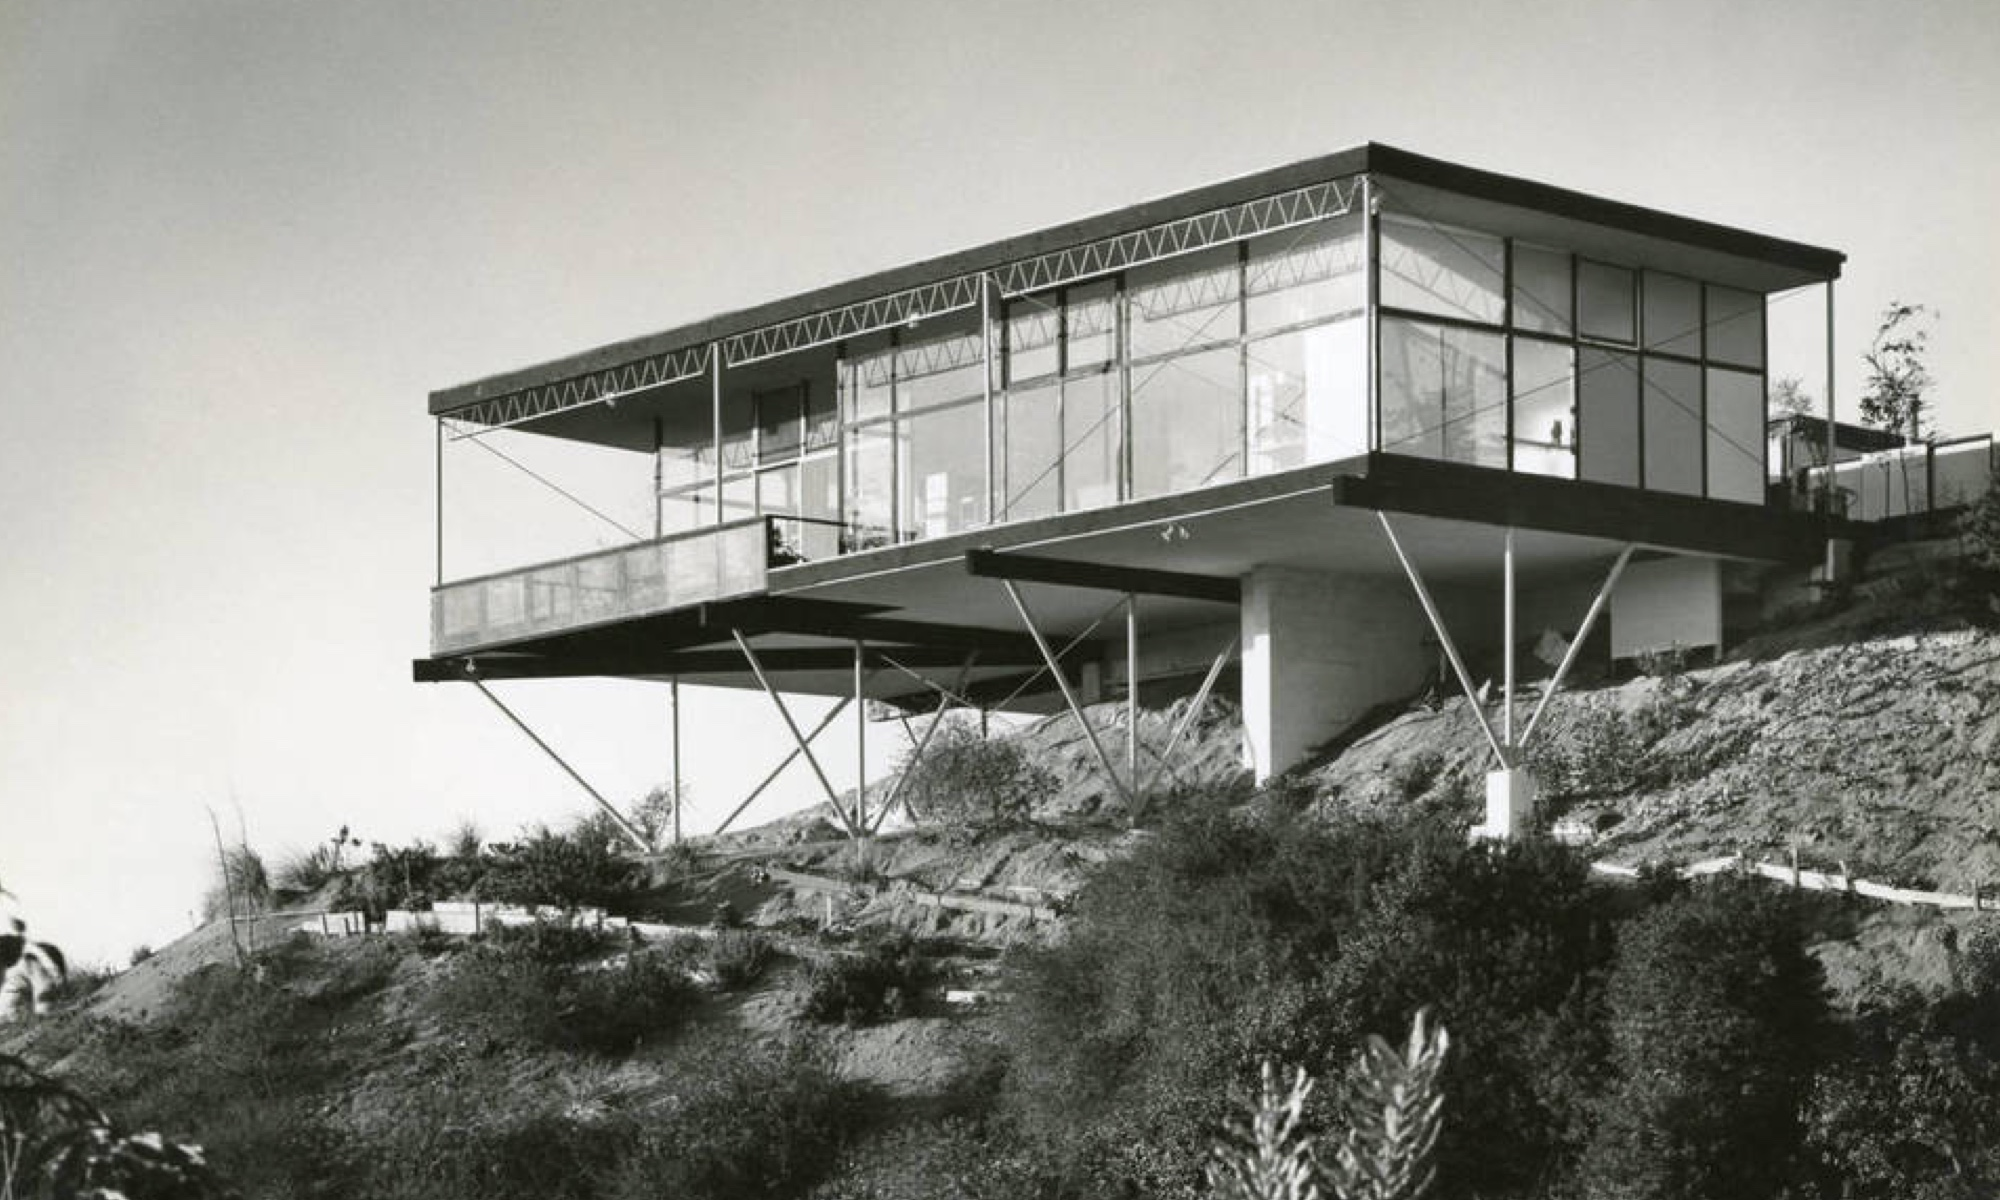 The Grossman home in the Hollywood Hills, 1956.